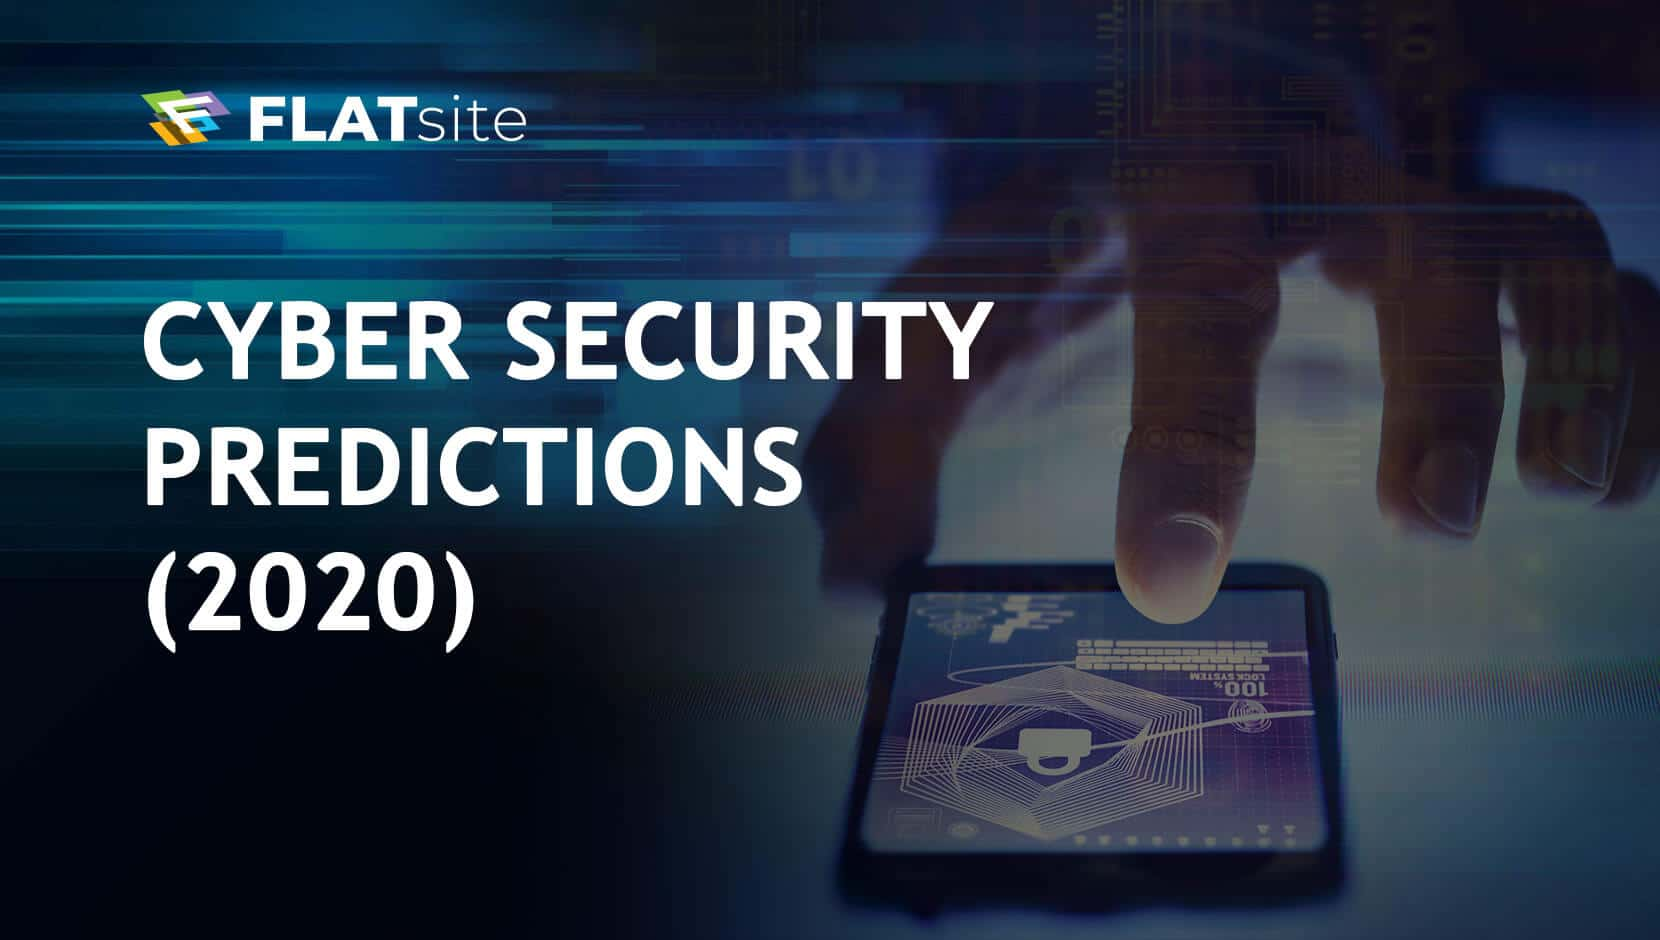 7 Cyber Security Predictions for 2020